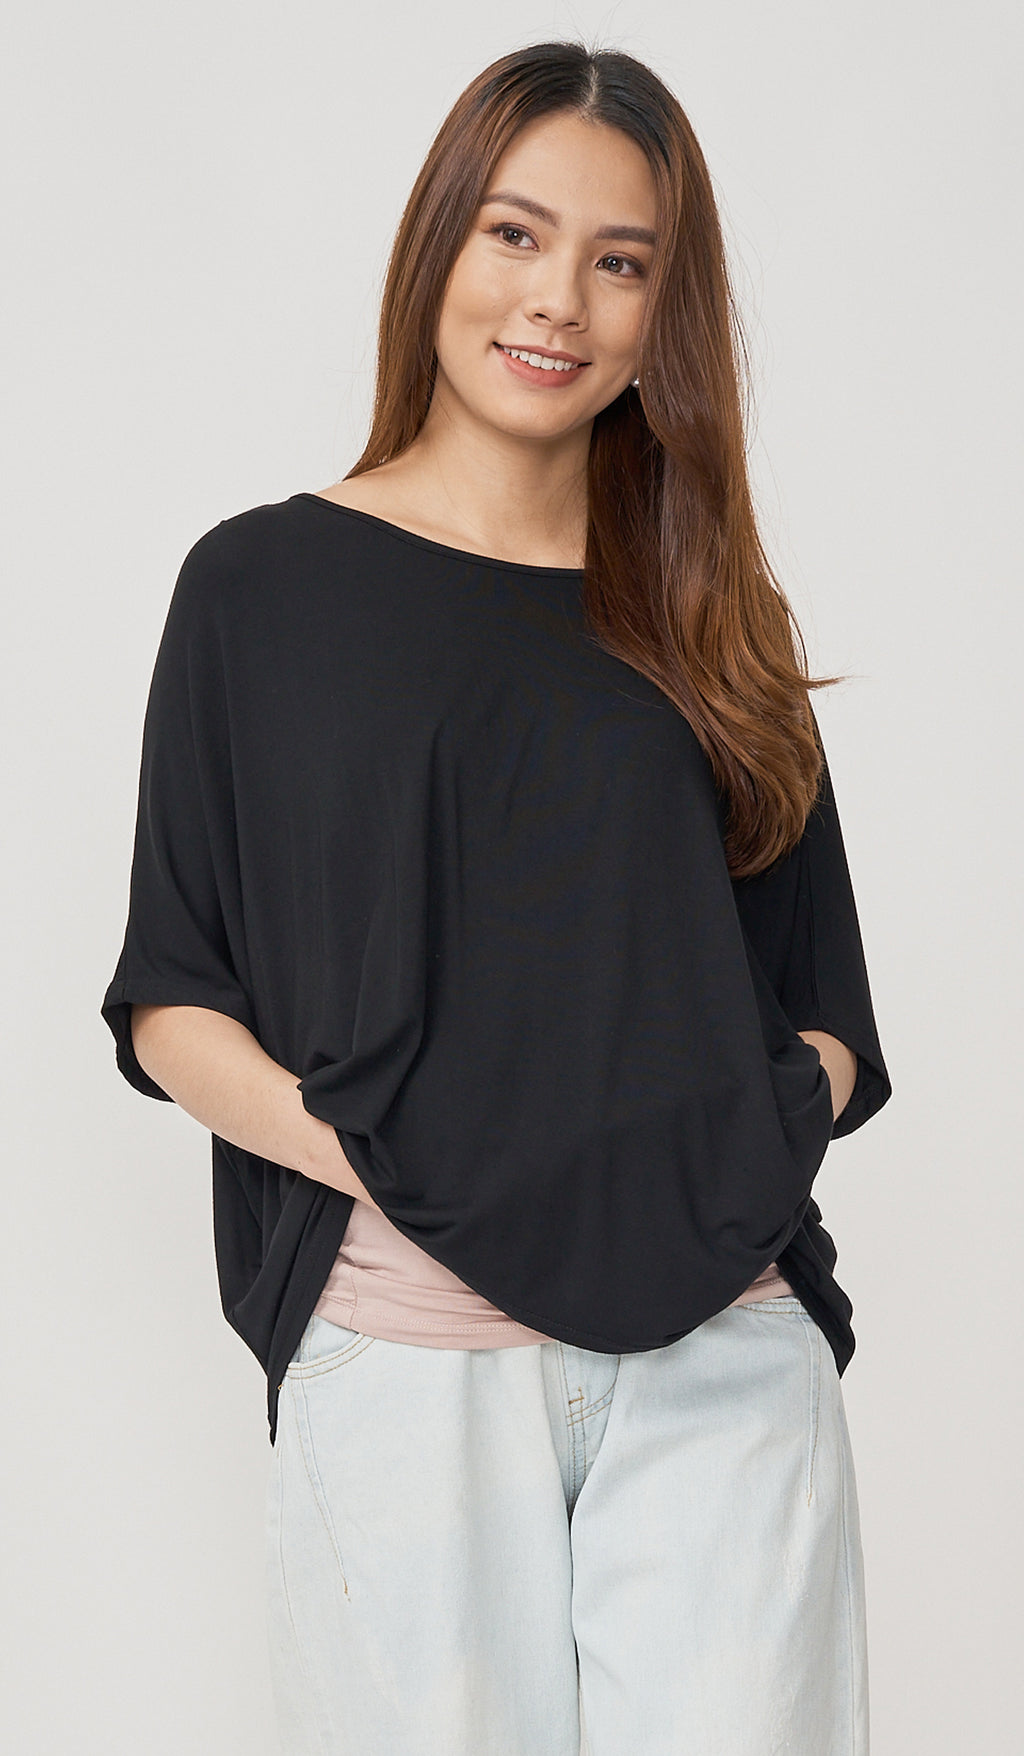 DEVON NURSING COVER TOP BLACK